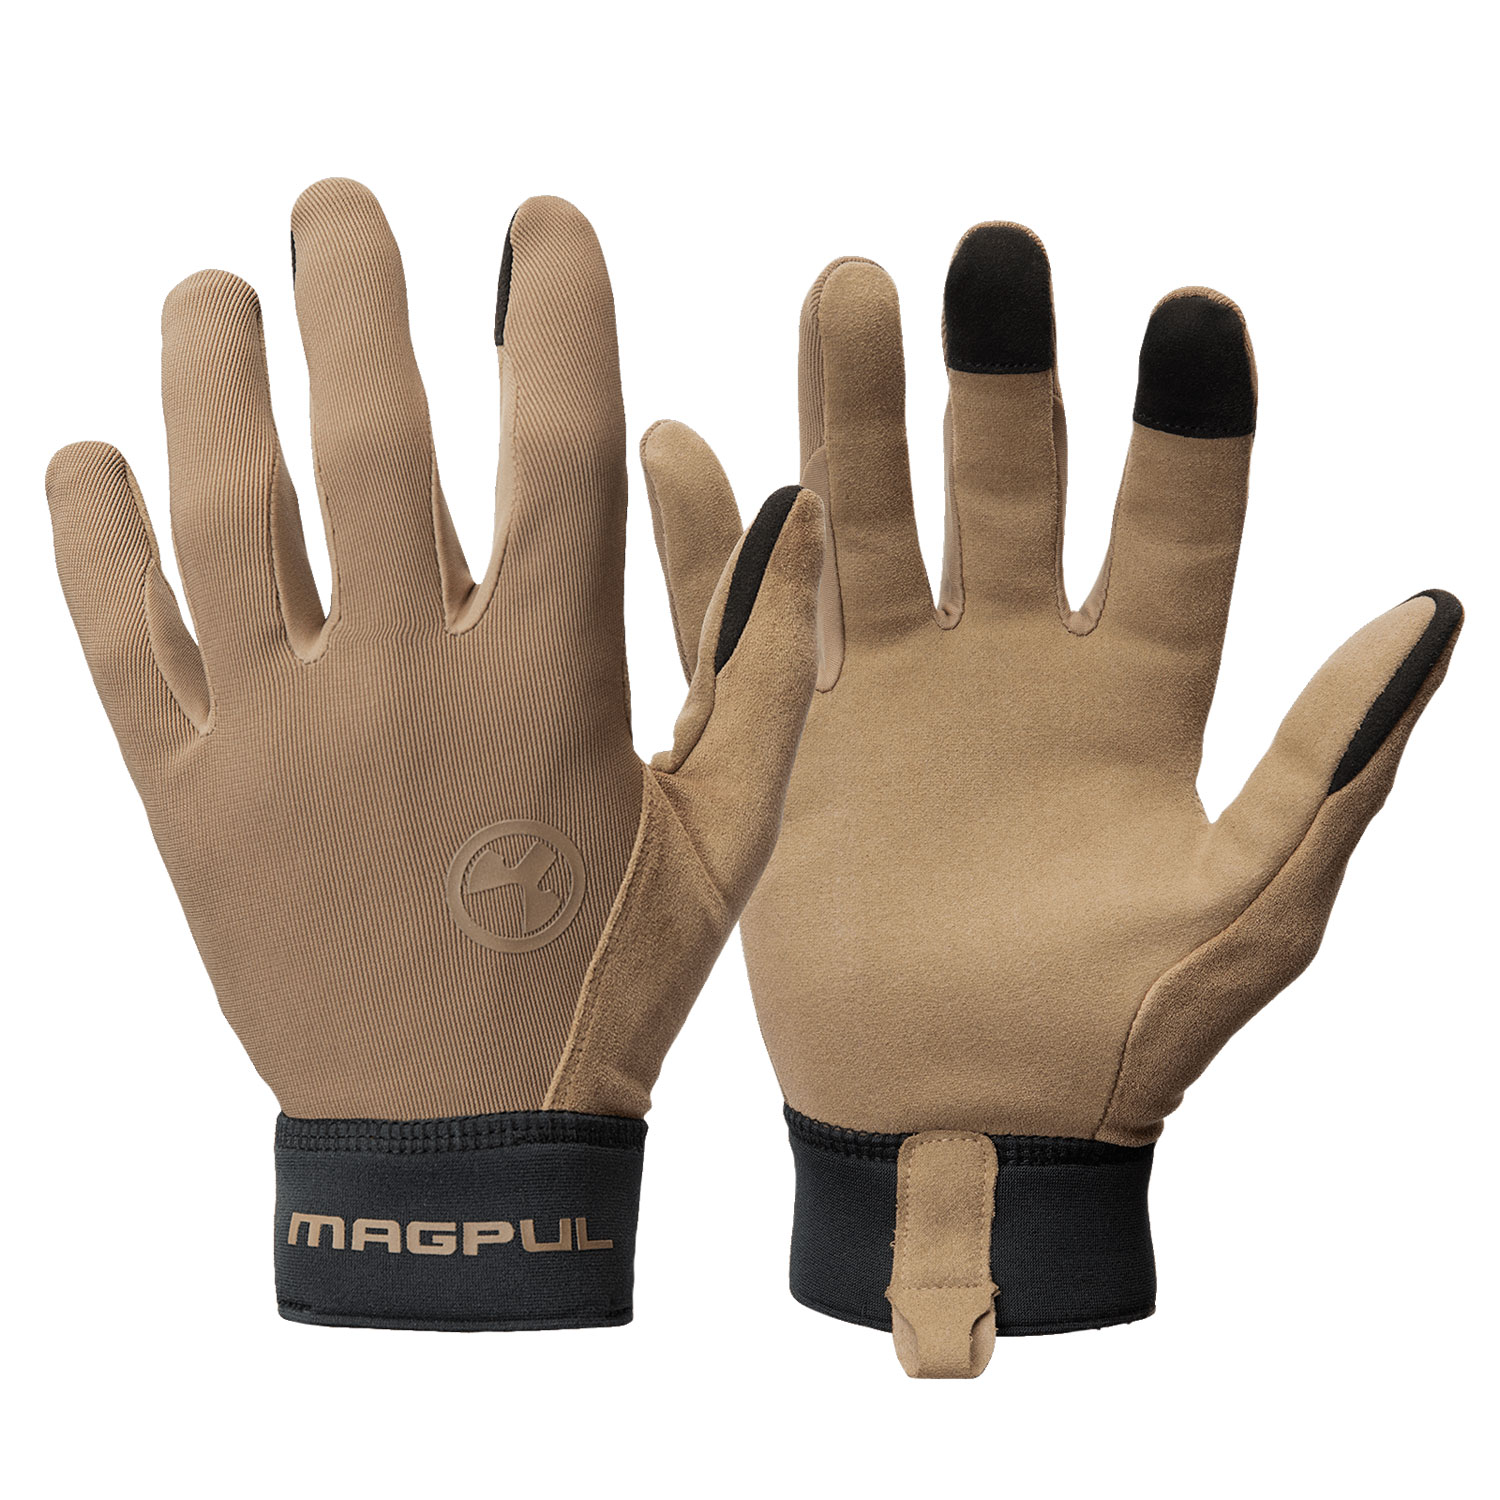 Magpul MAG1014-251 Technical Glove 2.0 Large Coyote